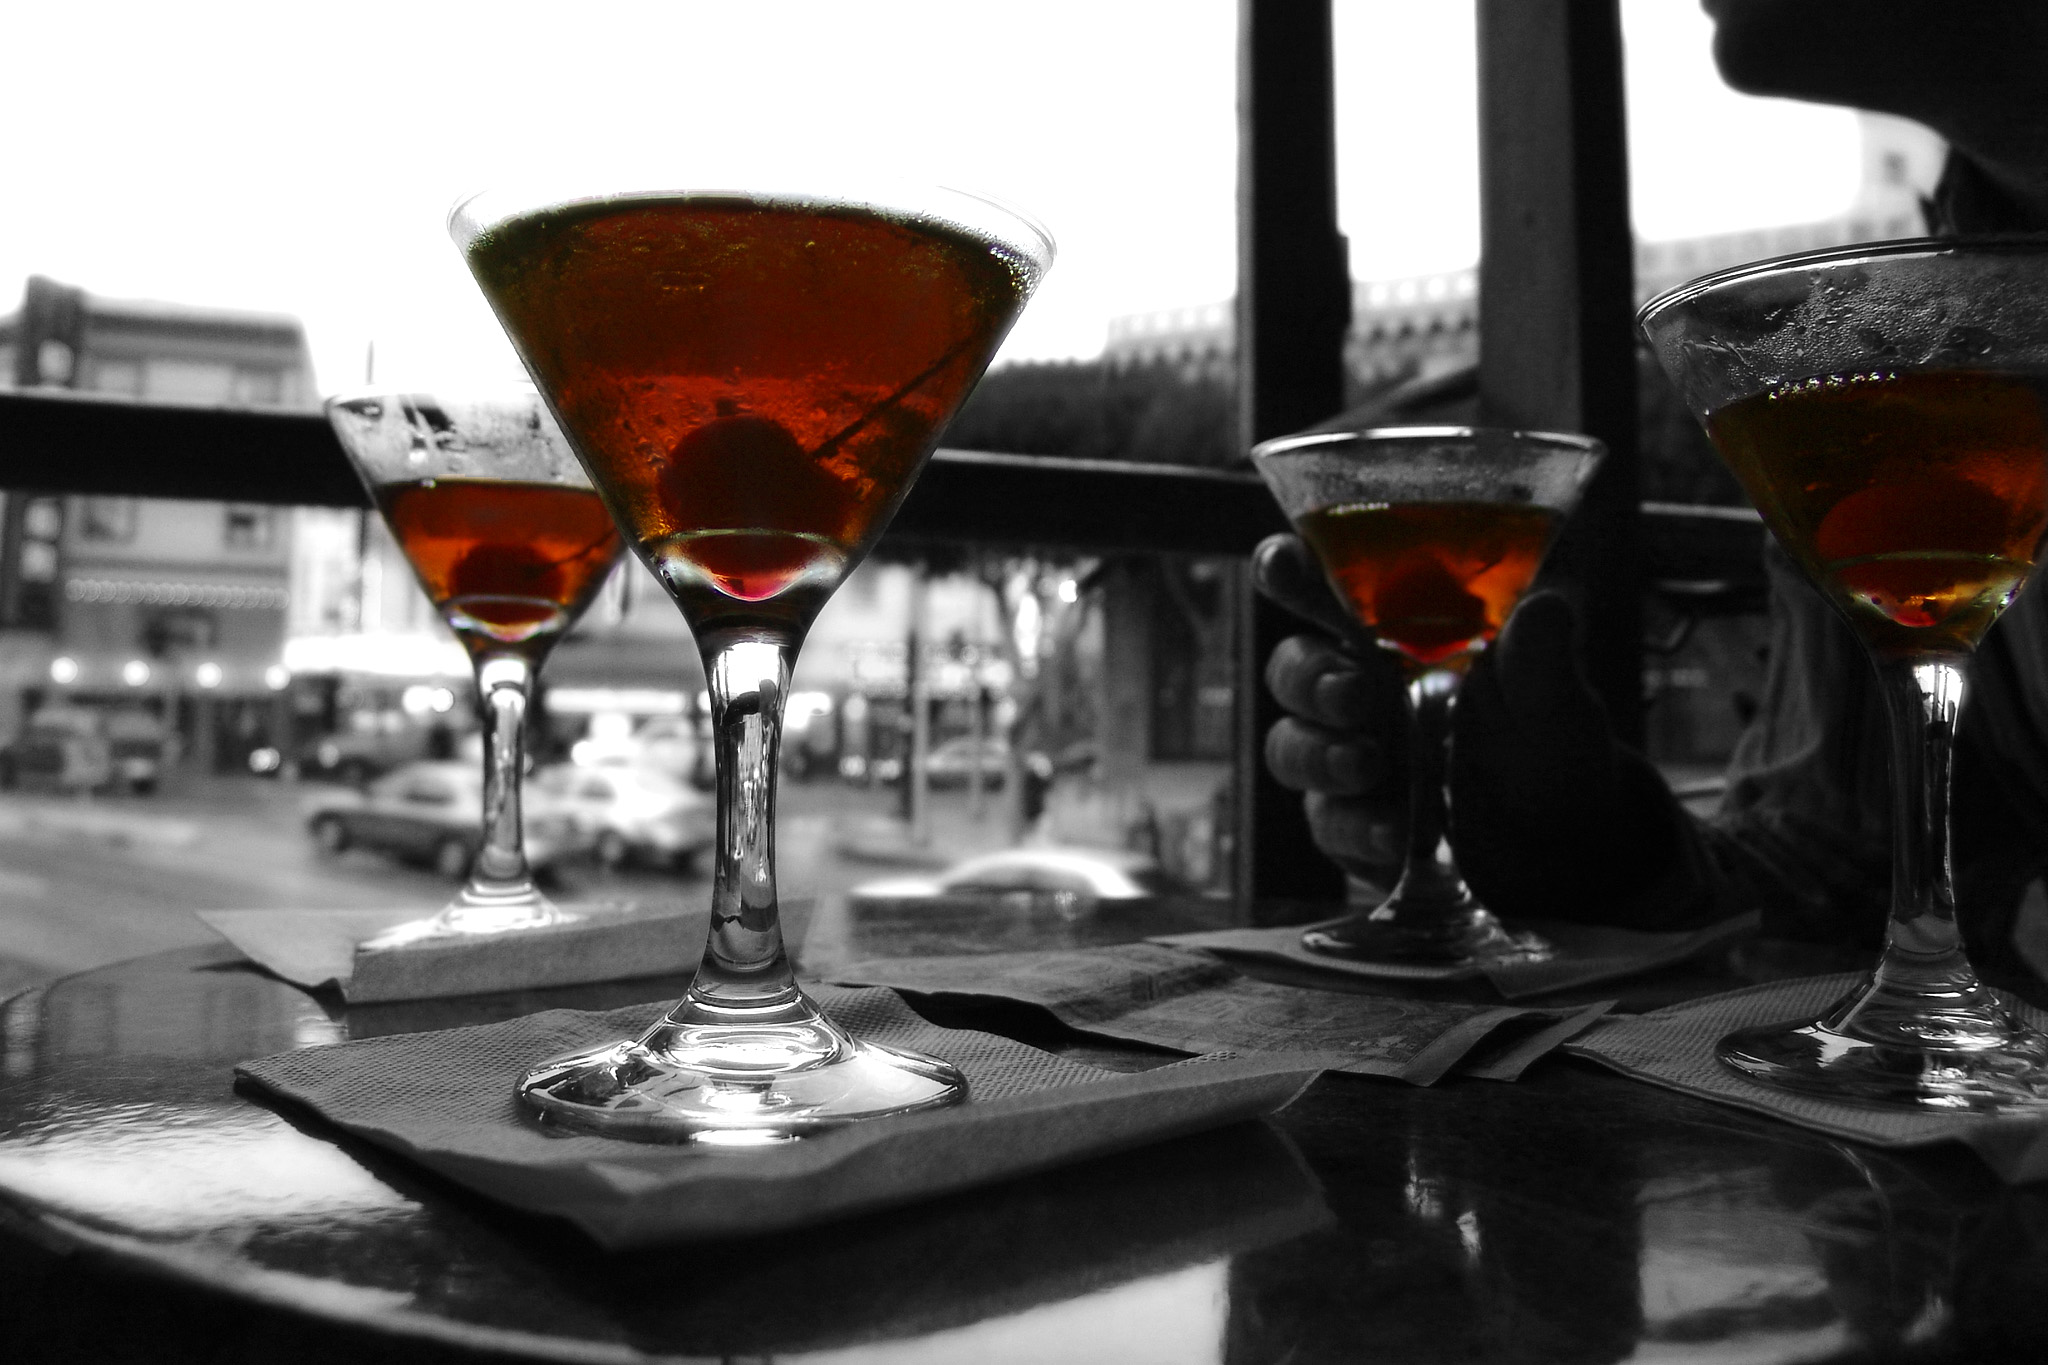 vesuvio-drinks-color-47979-o